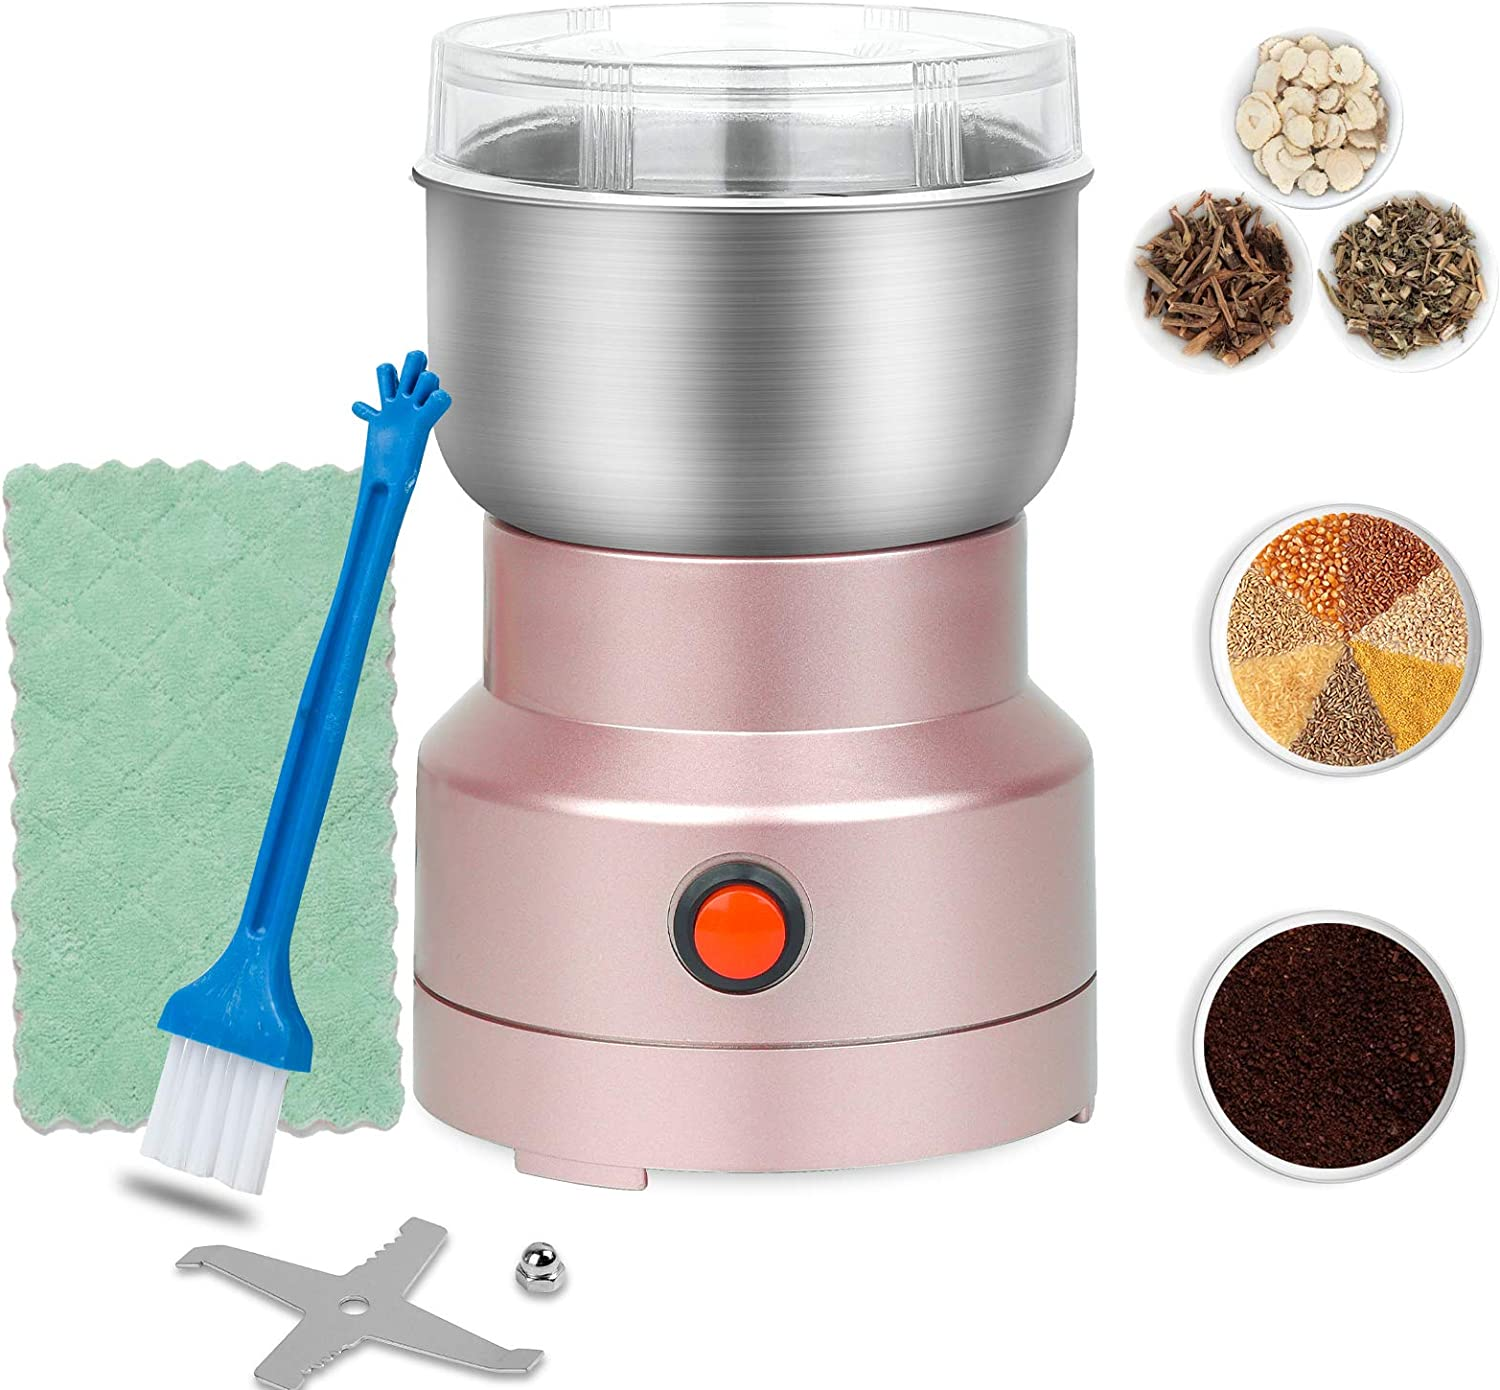 Extra Fine Spice Grinder 150W Mini Electric Seed Grinder Dry Mill Multifunction Smash Machine with Cleaning Brush 10s Rapid Grinding Spices, Seasonings, Seeds, Condiment,Corns,Grains,Root